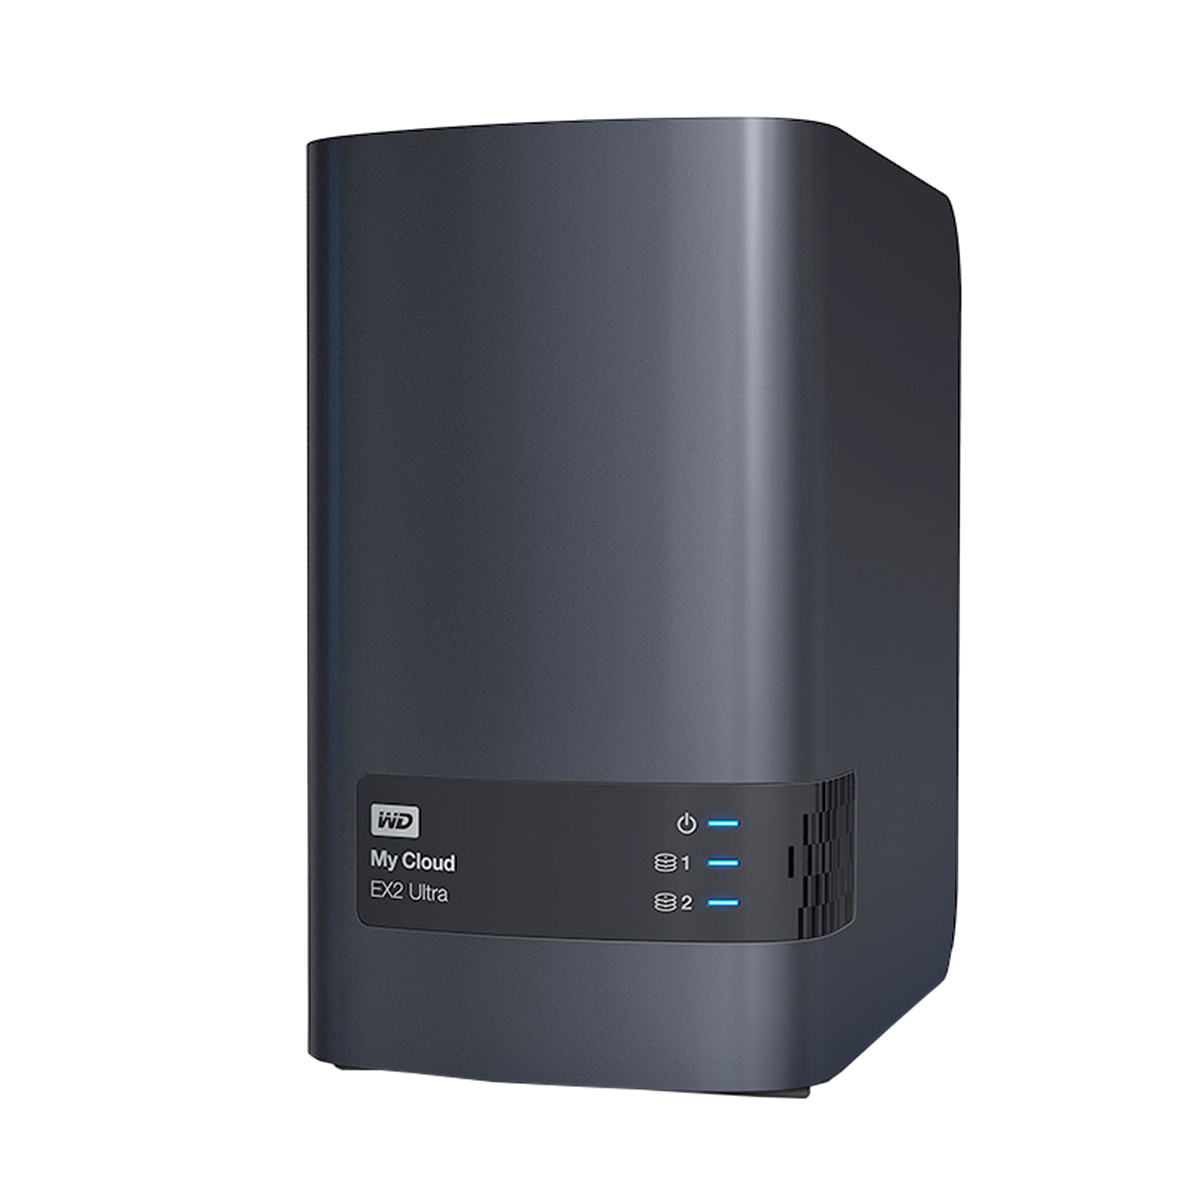 Western Digital upgrades its My Cloud NAS system with multi-tasking